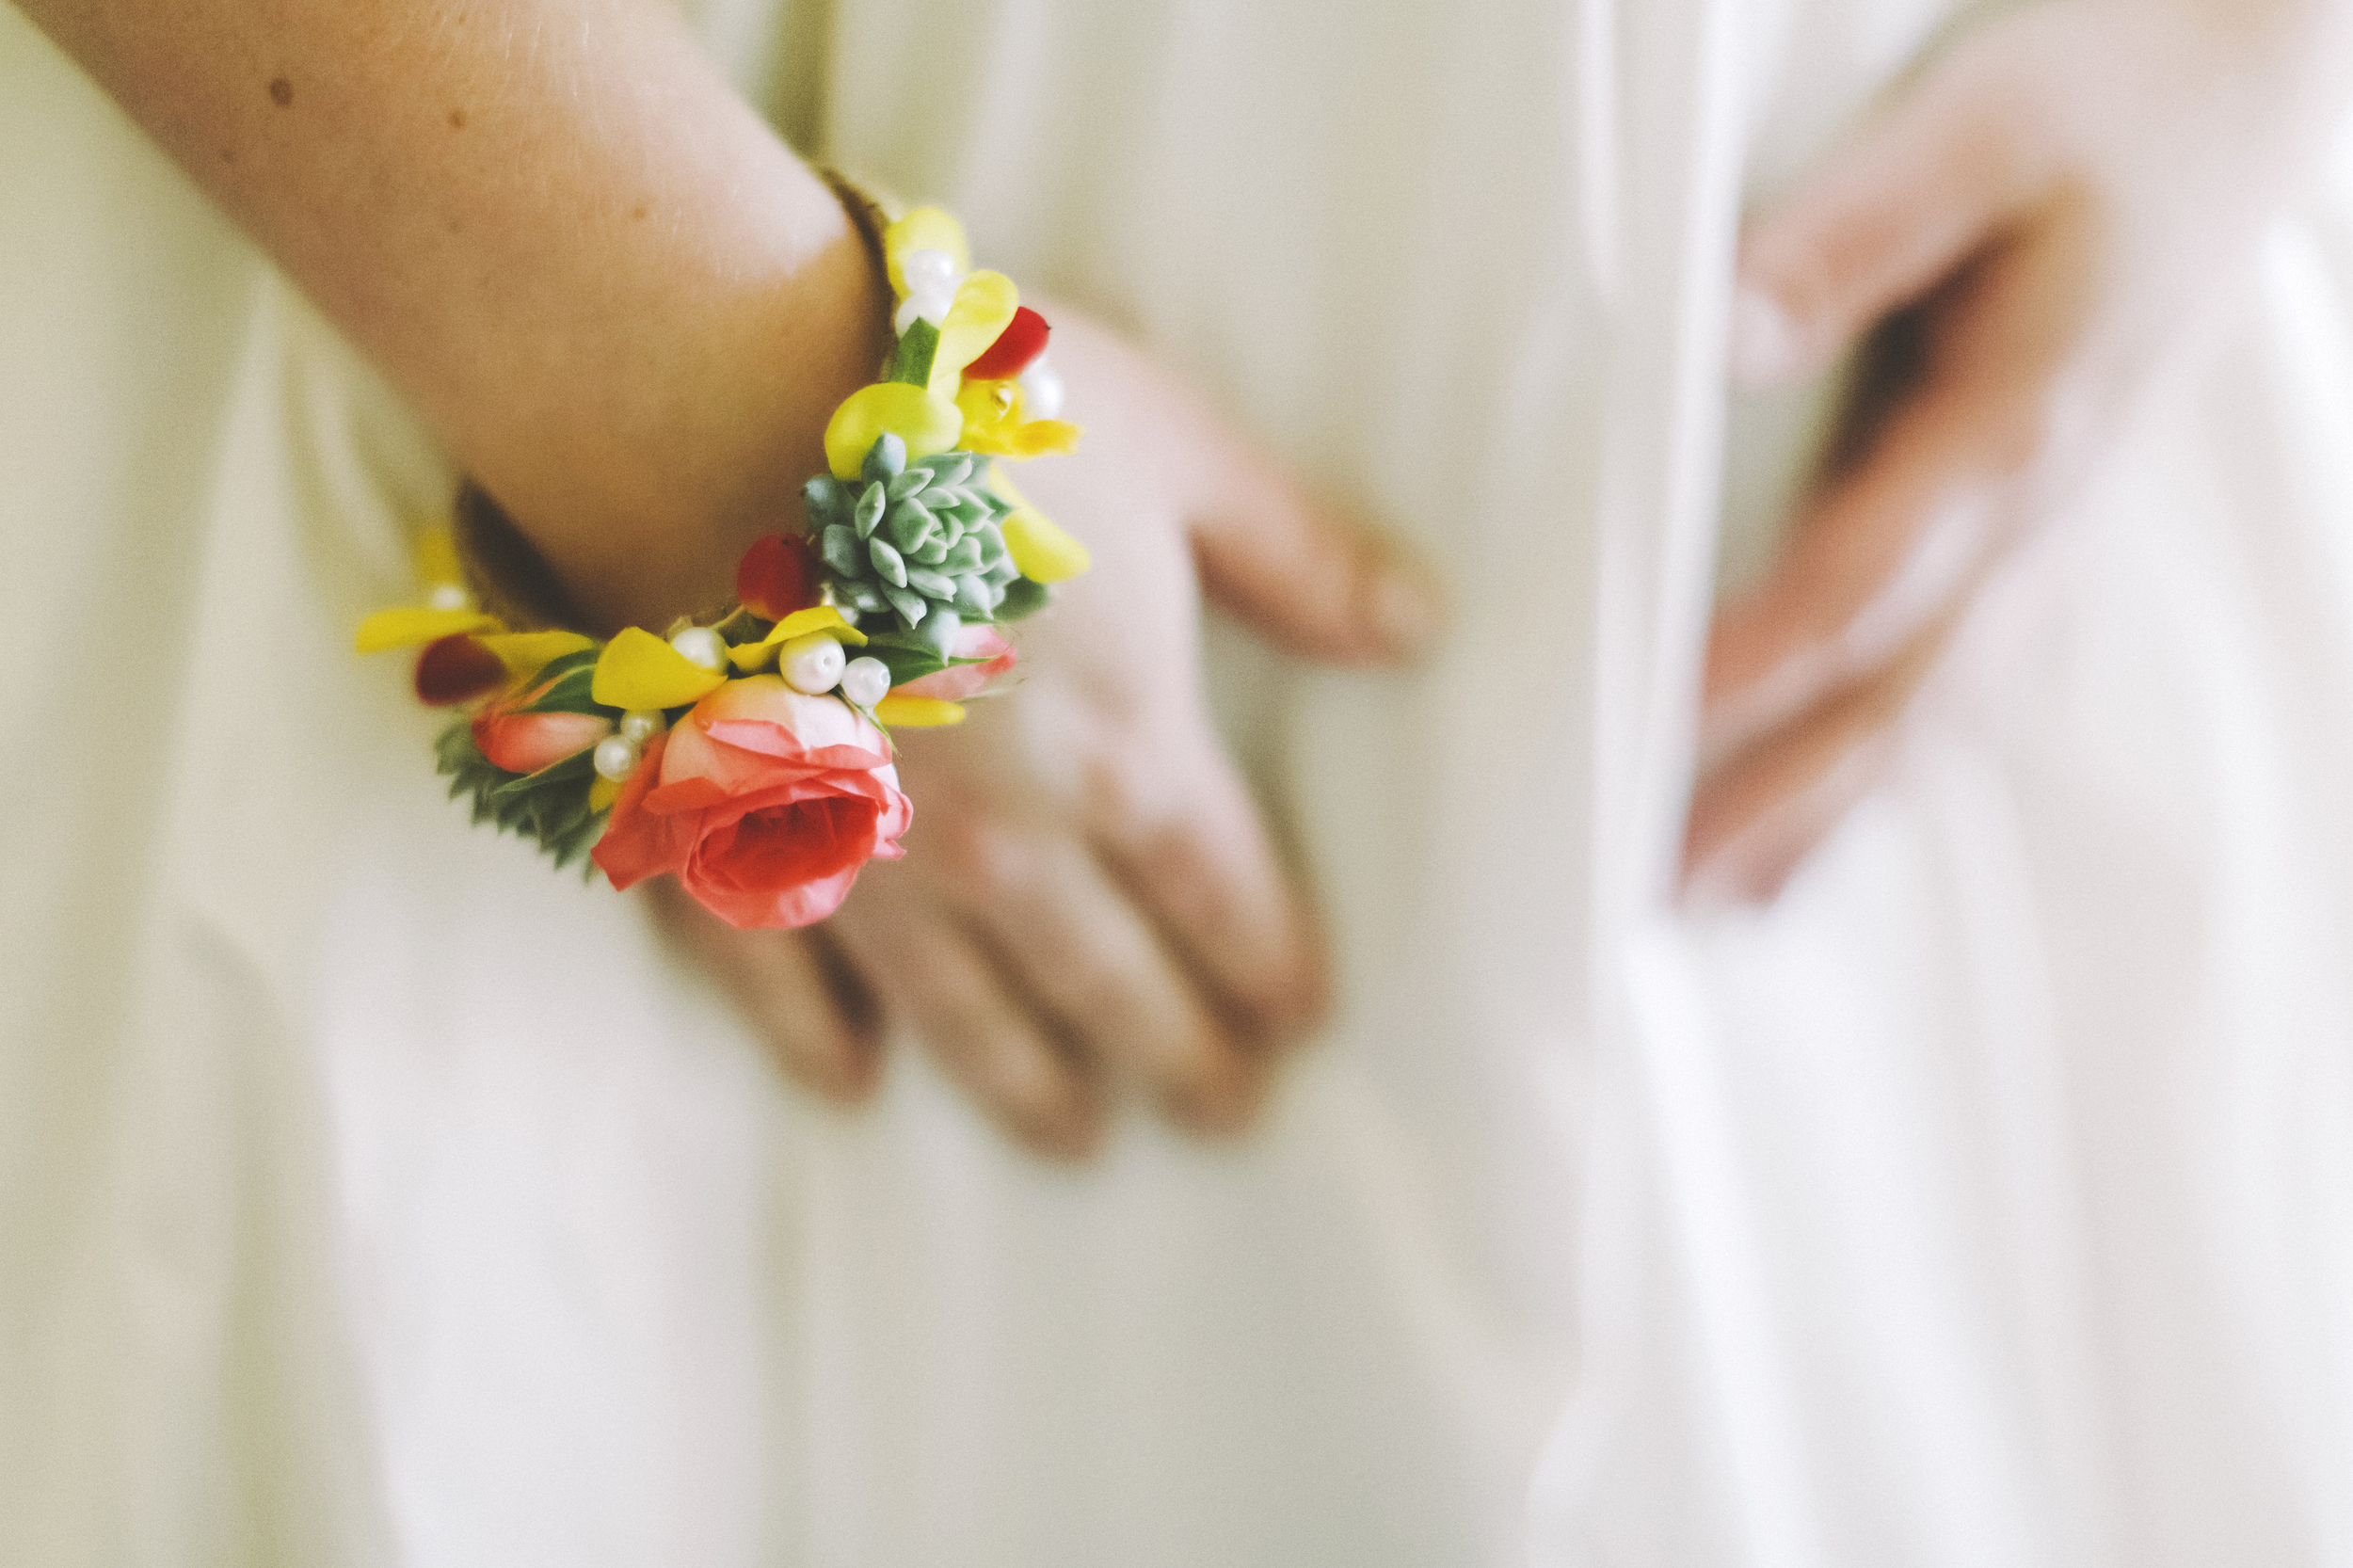 angie-diaz-photography-maui-elopement-76.jpg